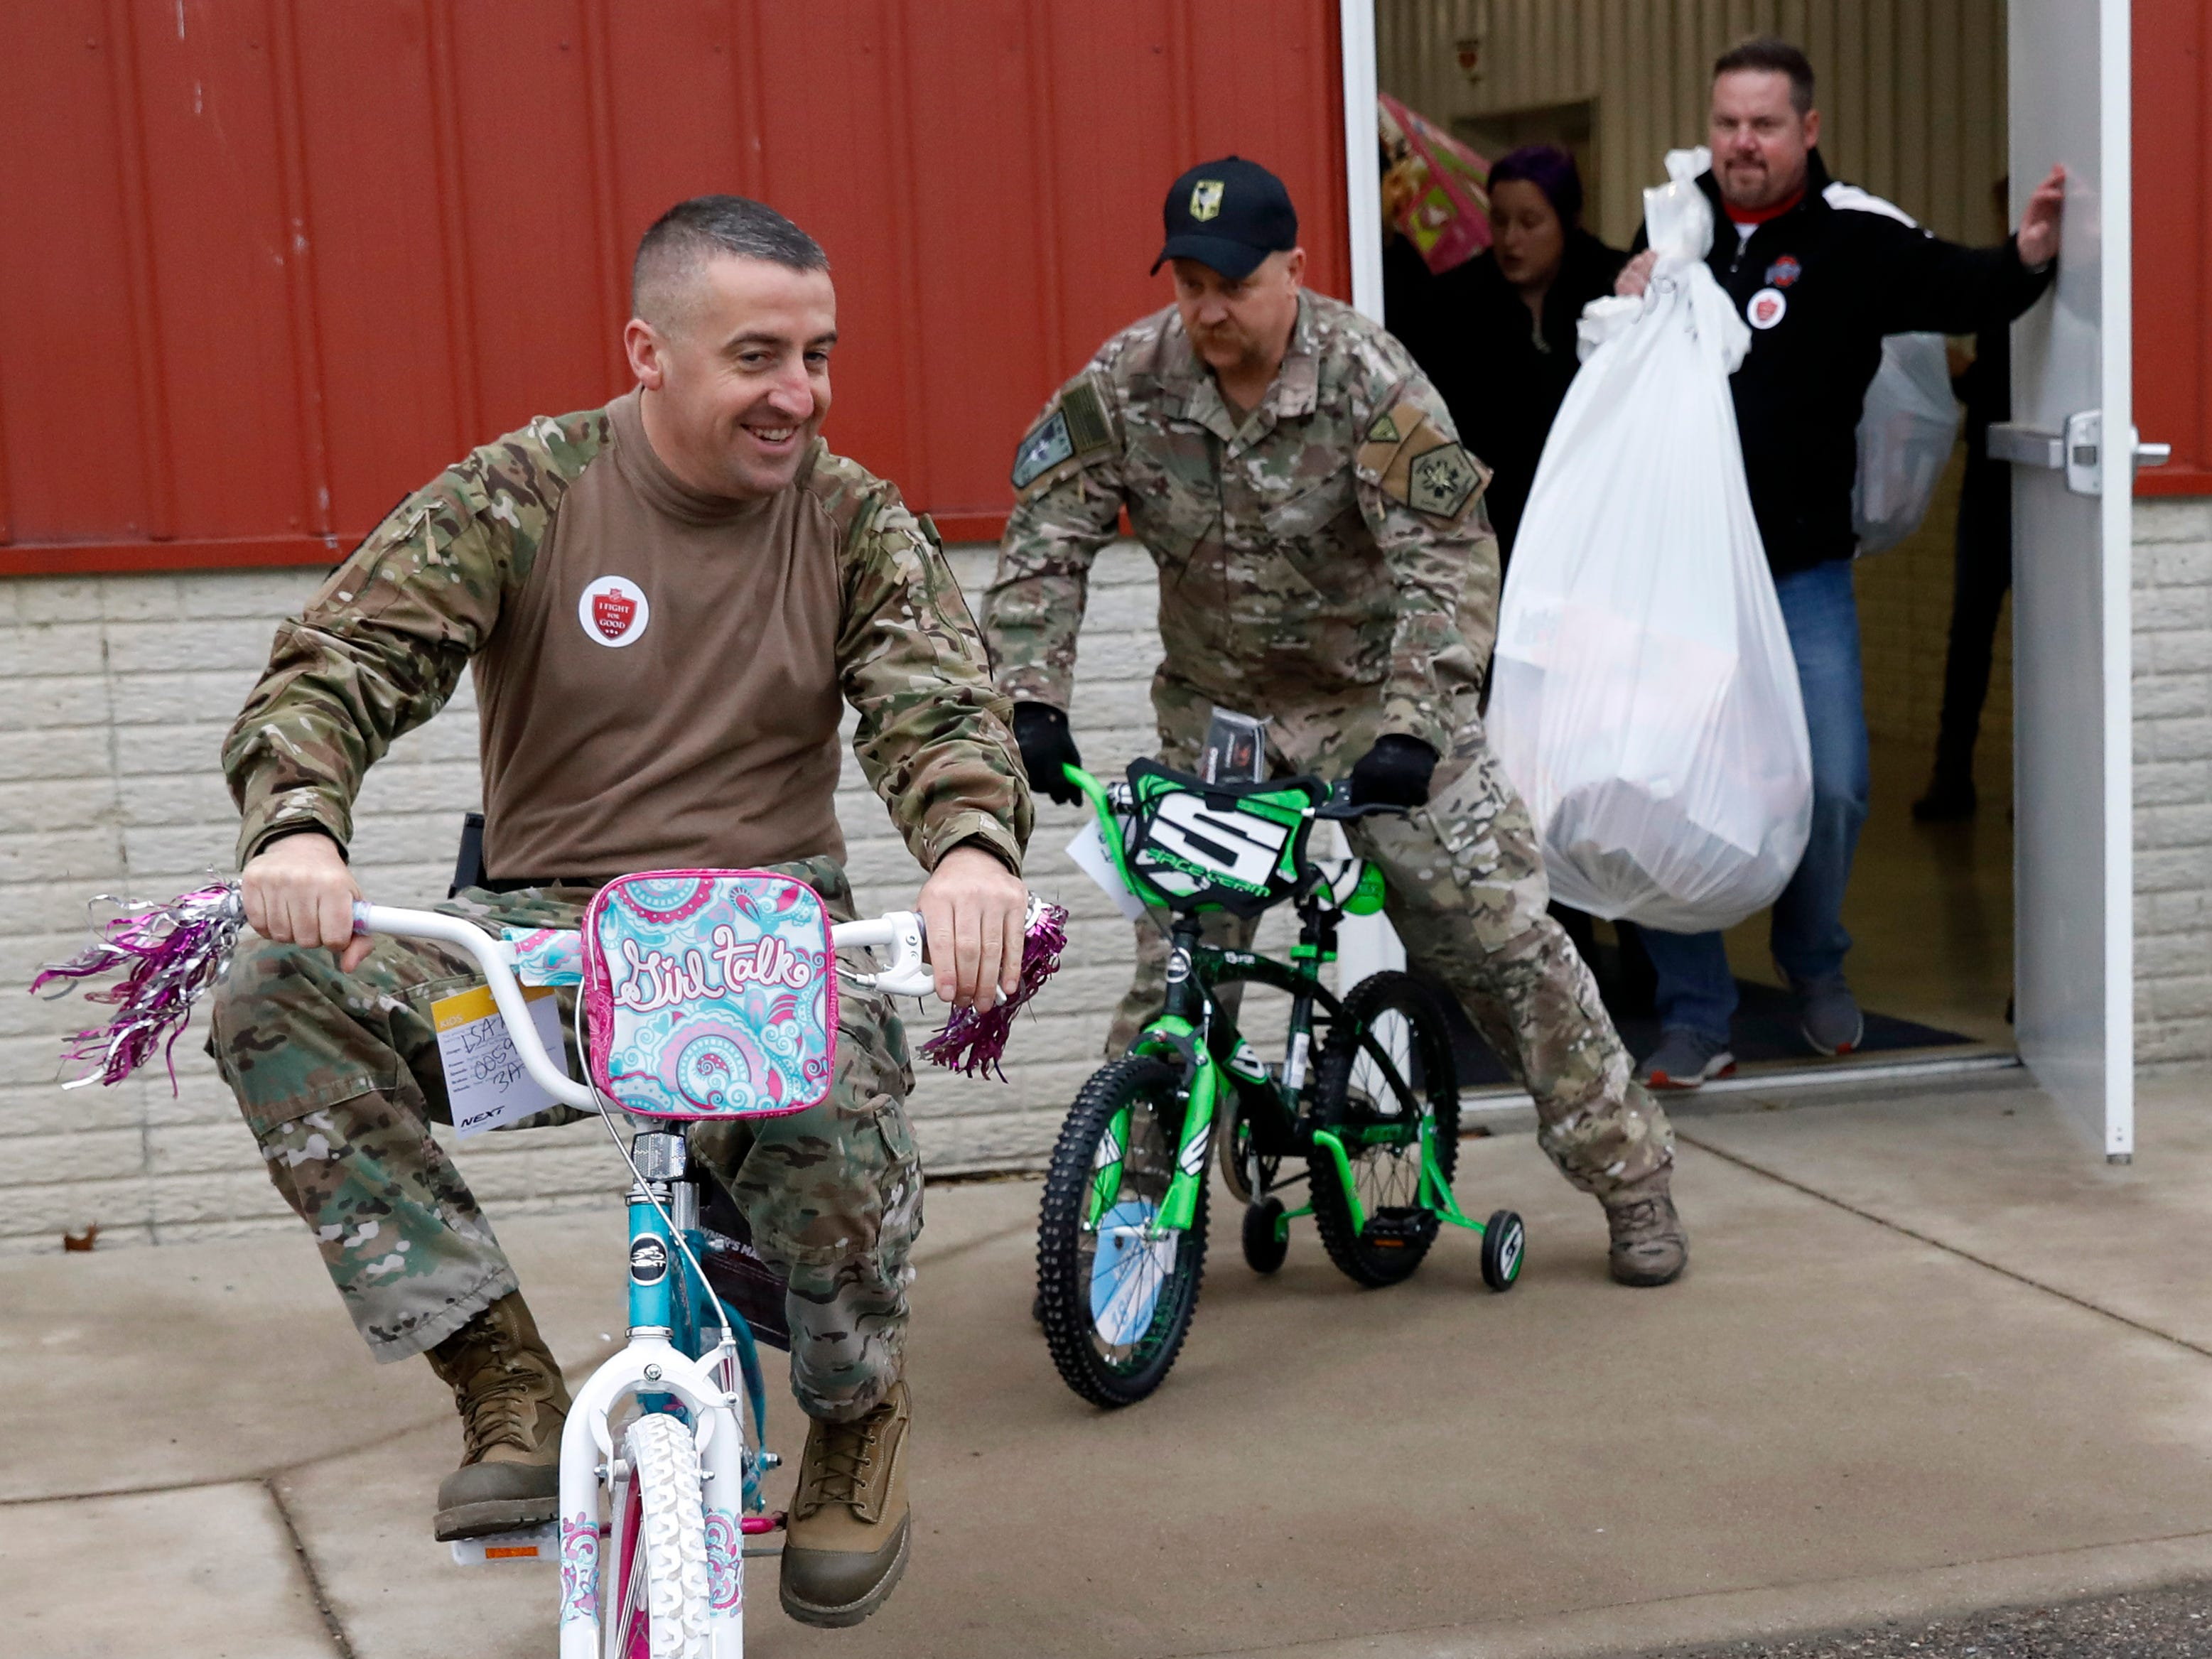 Fairfield County Sheriff's Office S.W.A.T. team members T.J. Strawn and John Lambrecht ride bicycles out of the Ed Sands building Friday, Dec. 21, 2018, at the Fairfield County Fairgrounds in Lancaster. Strawn, Lambrecht and other members of the sheriffs office S.W.A.T. team helped carry presents to recipient's vehicles during the Salvation Army of Fairfield County's Christmas Cheer gift distribution. More than 800 children received presents, including beds and bicycles, through the program.